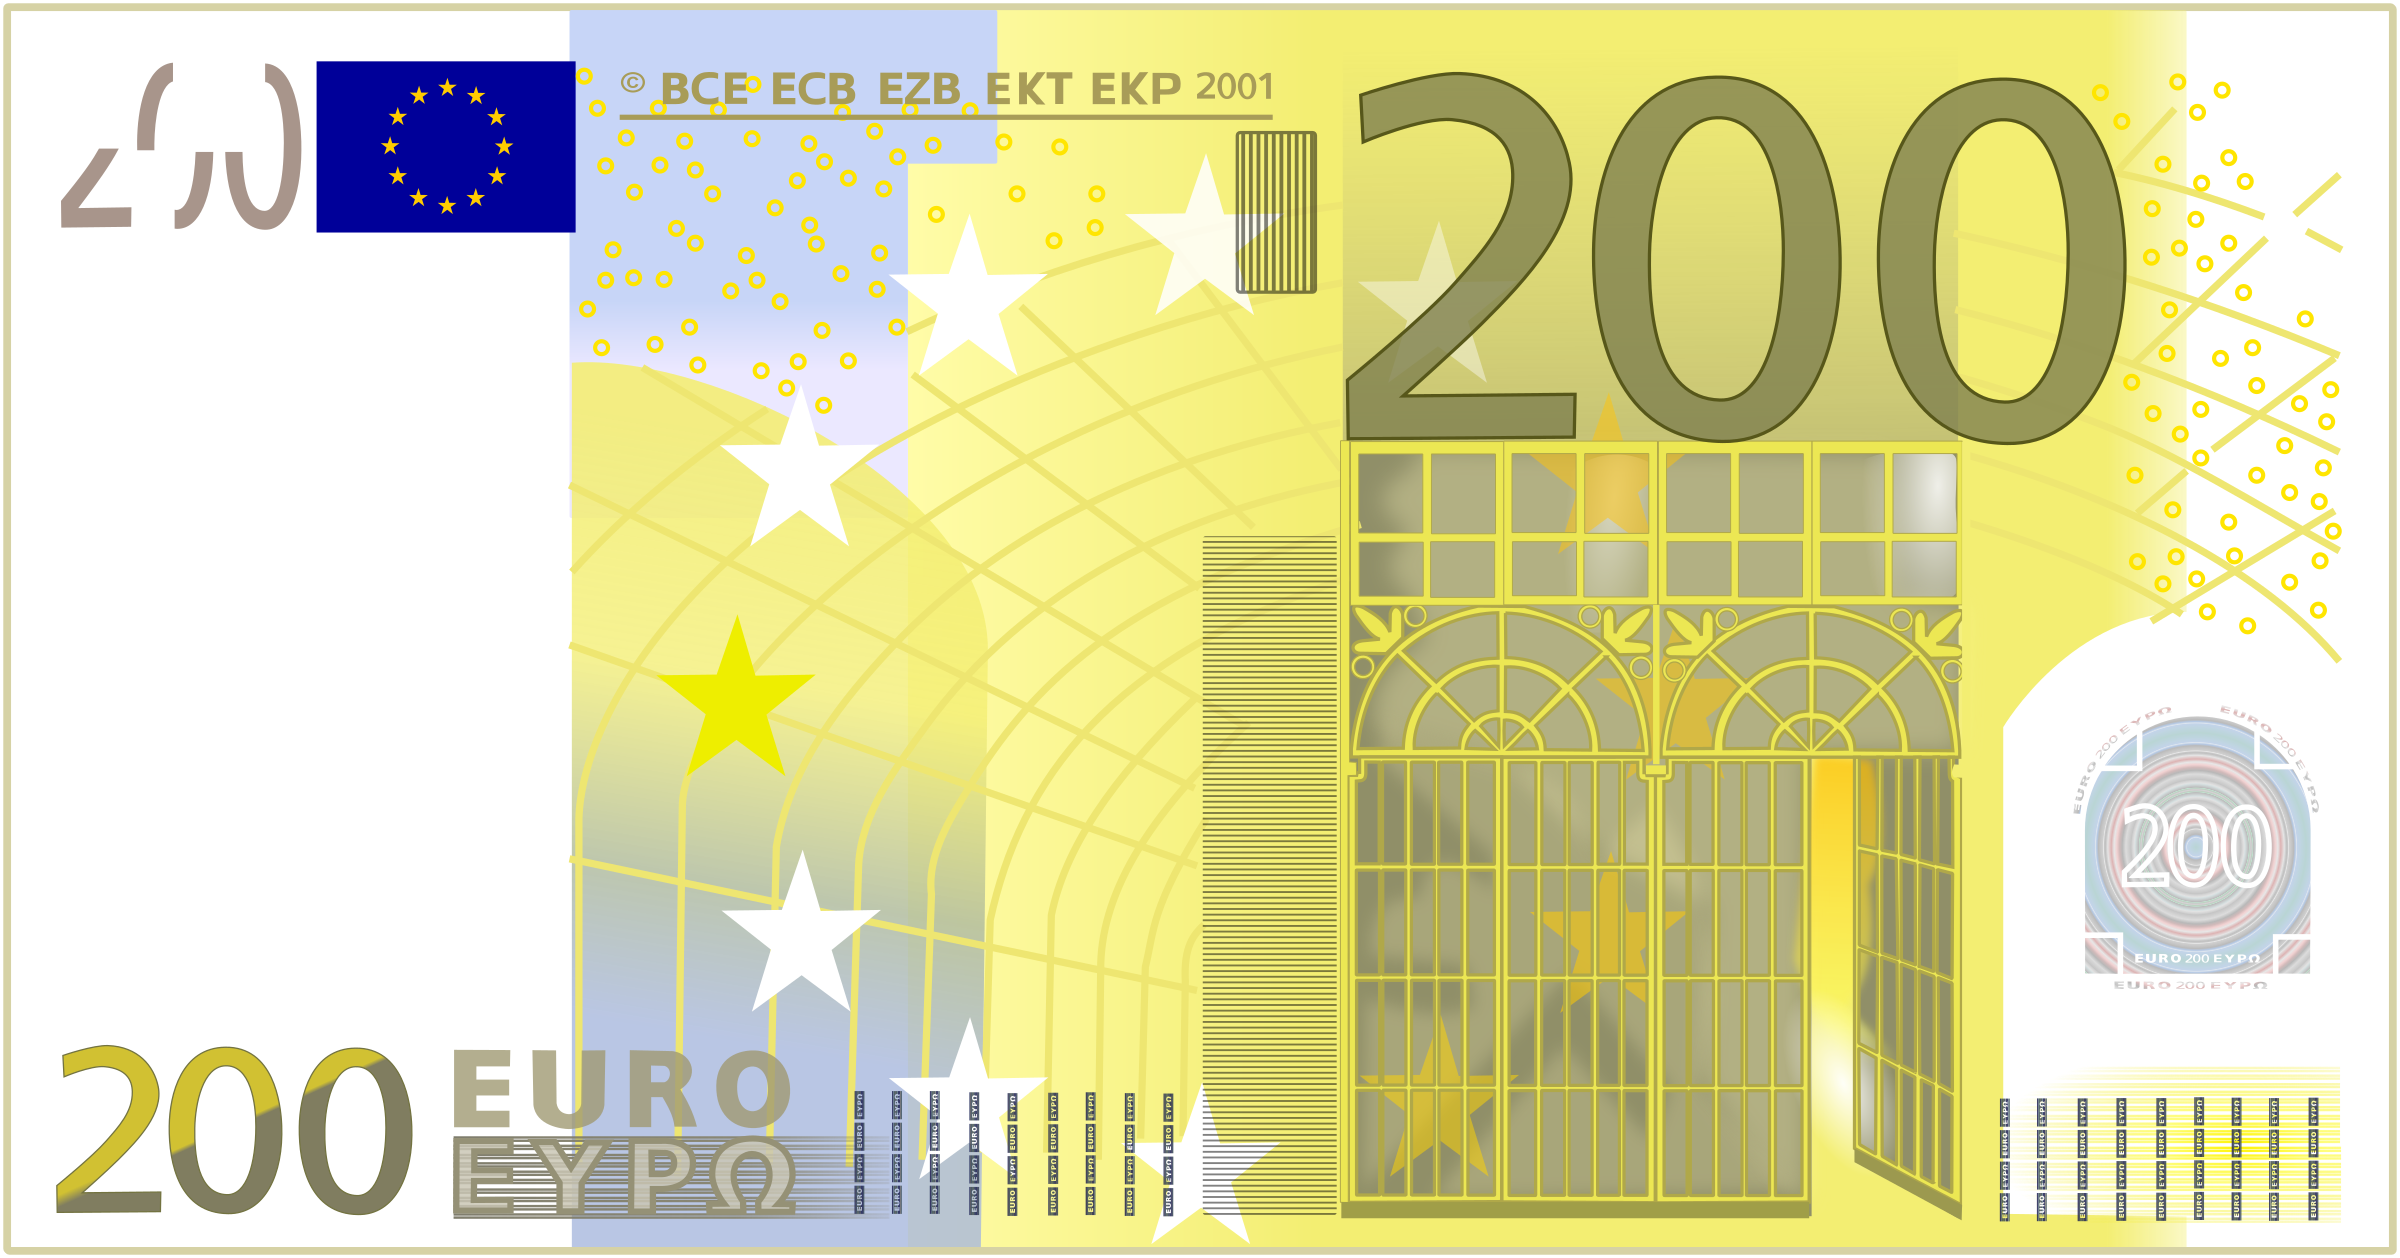 The 200 euro bill reflects an art movement known as the